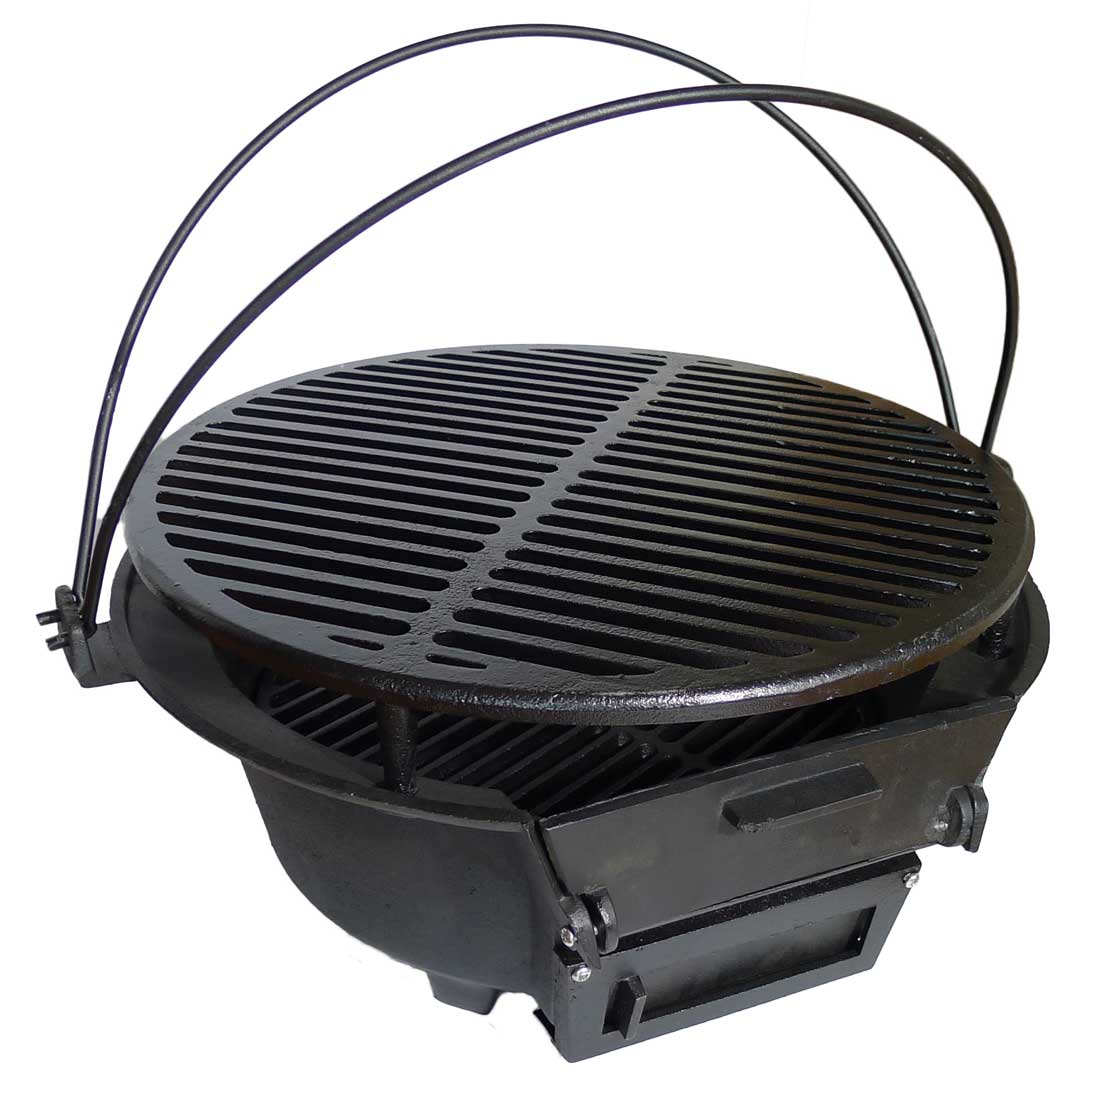 Easy To Care Home Hibachi Grill Design In Round Model With Curve Handles Black Color